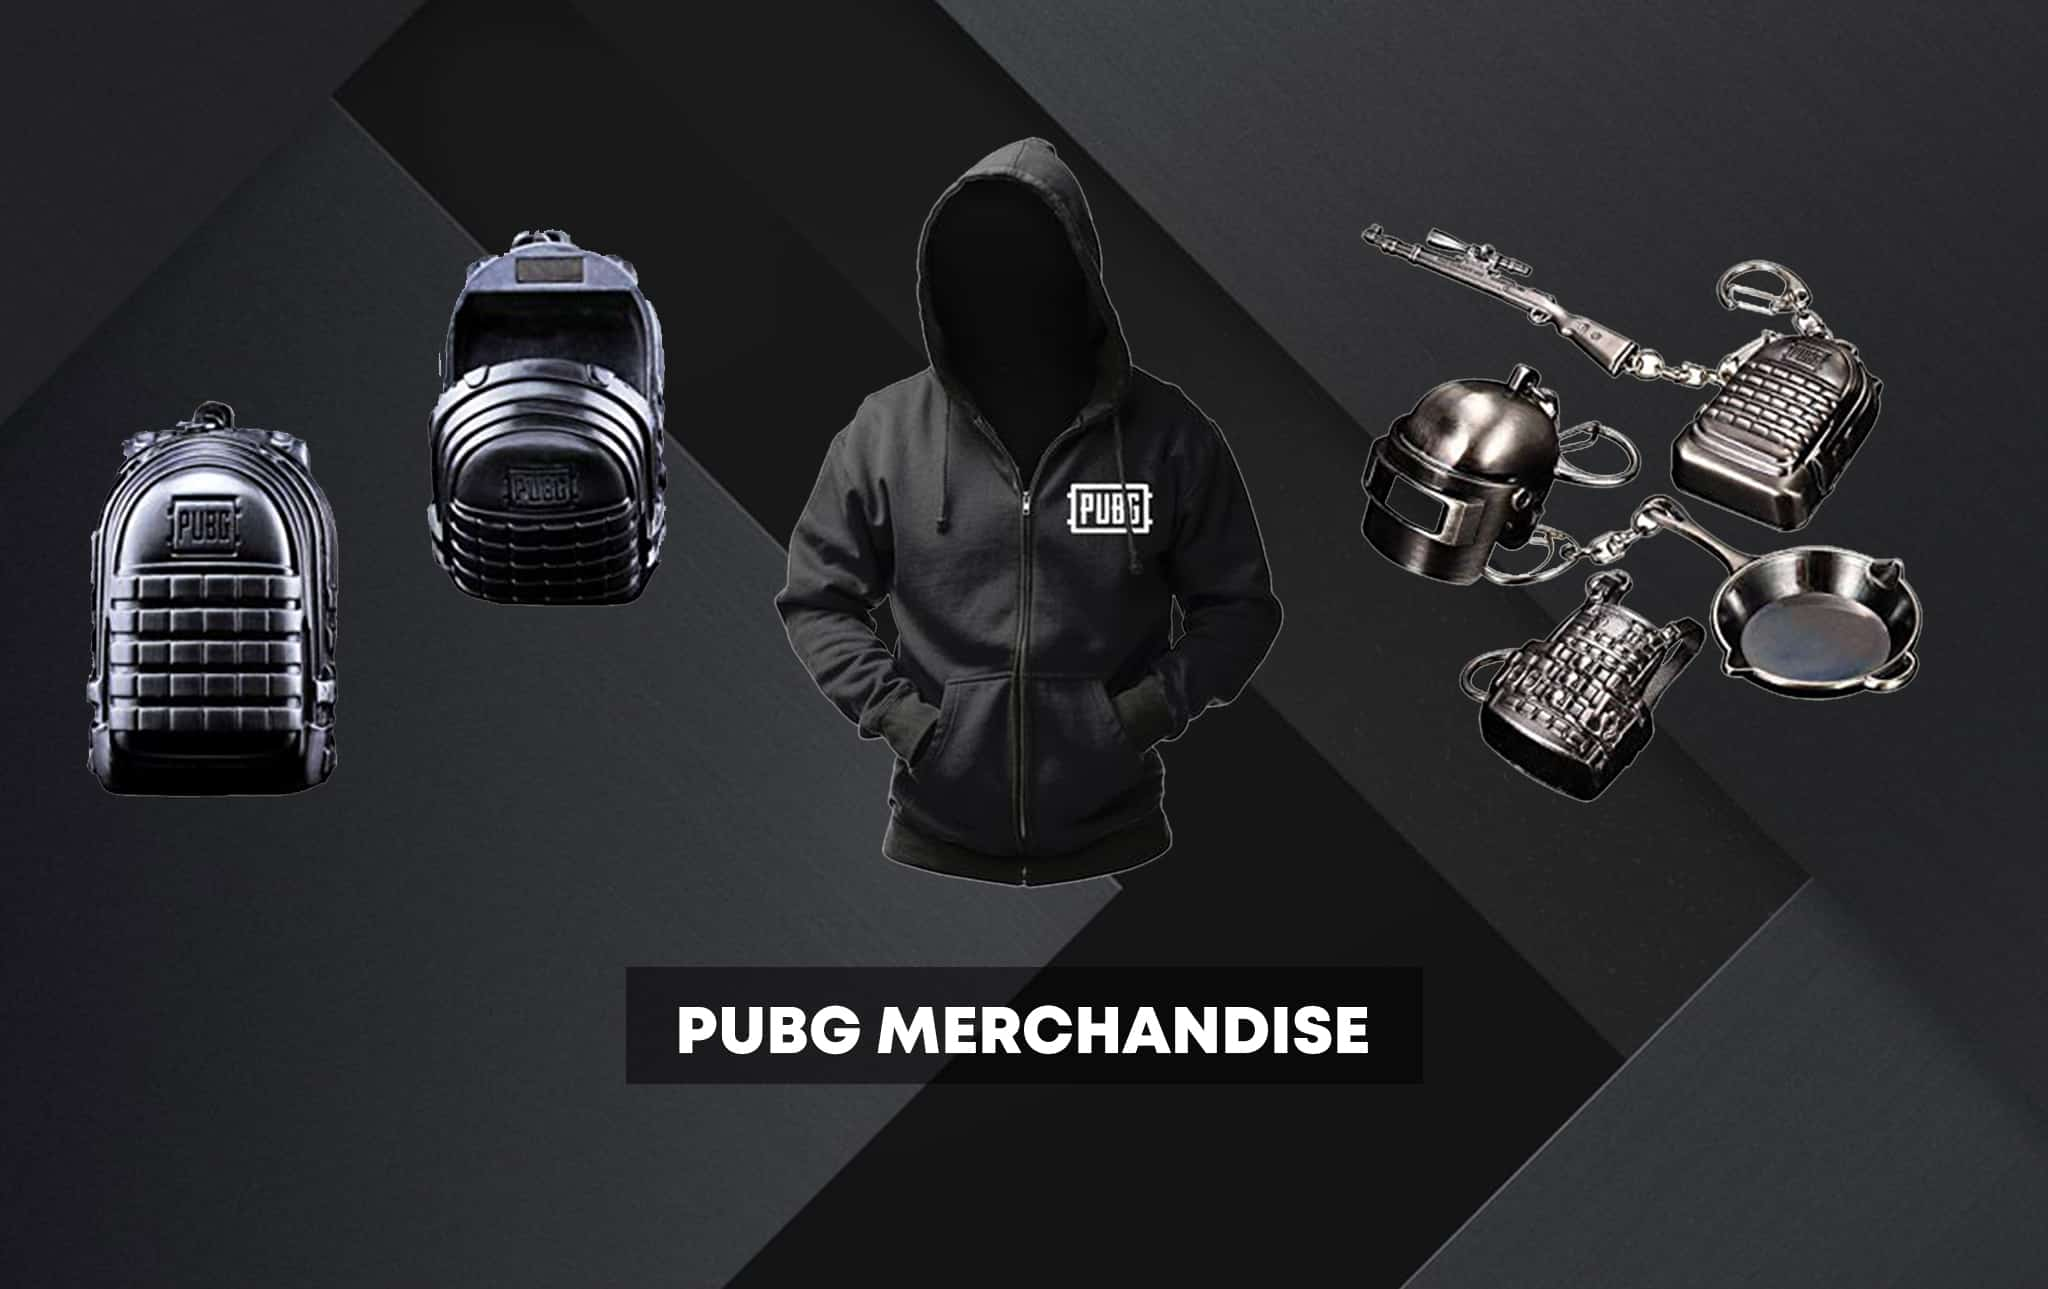 6fb672b5a PUBG Merchandise: T Shirts, Clothes, Collectibles from the Game